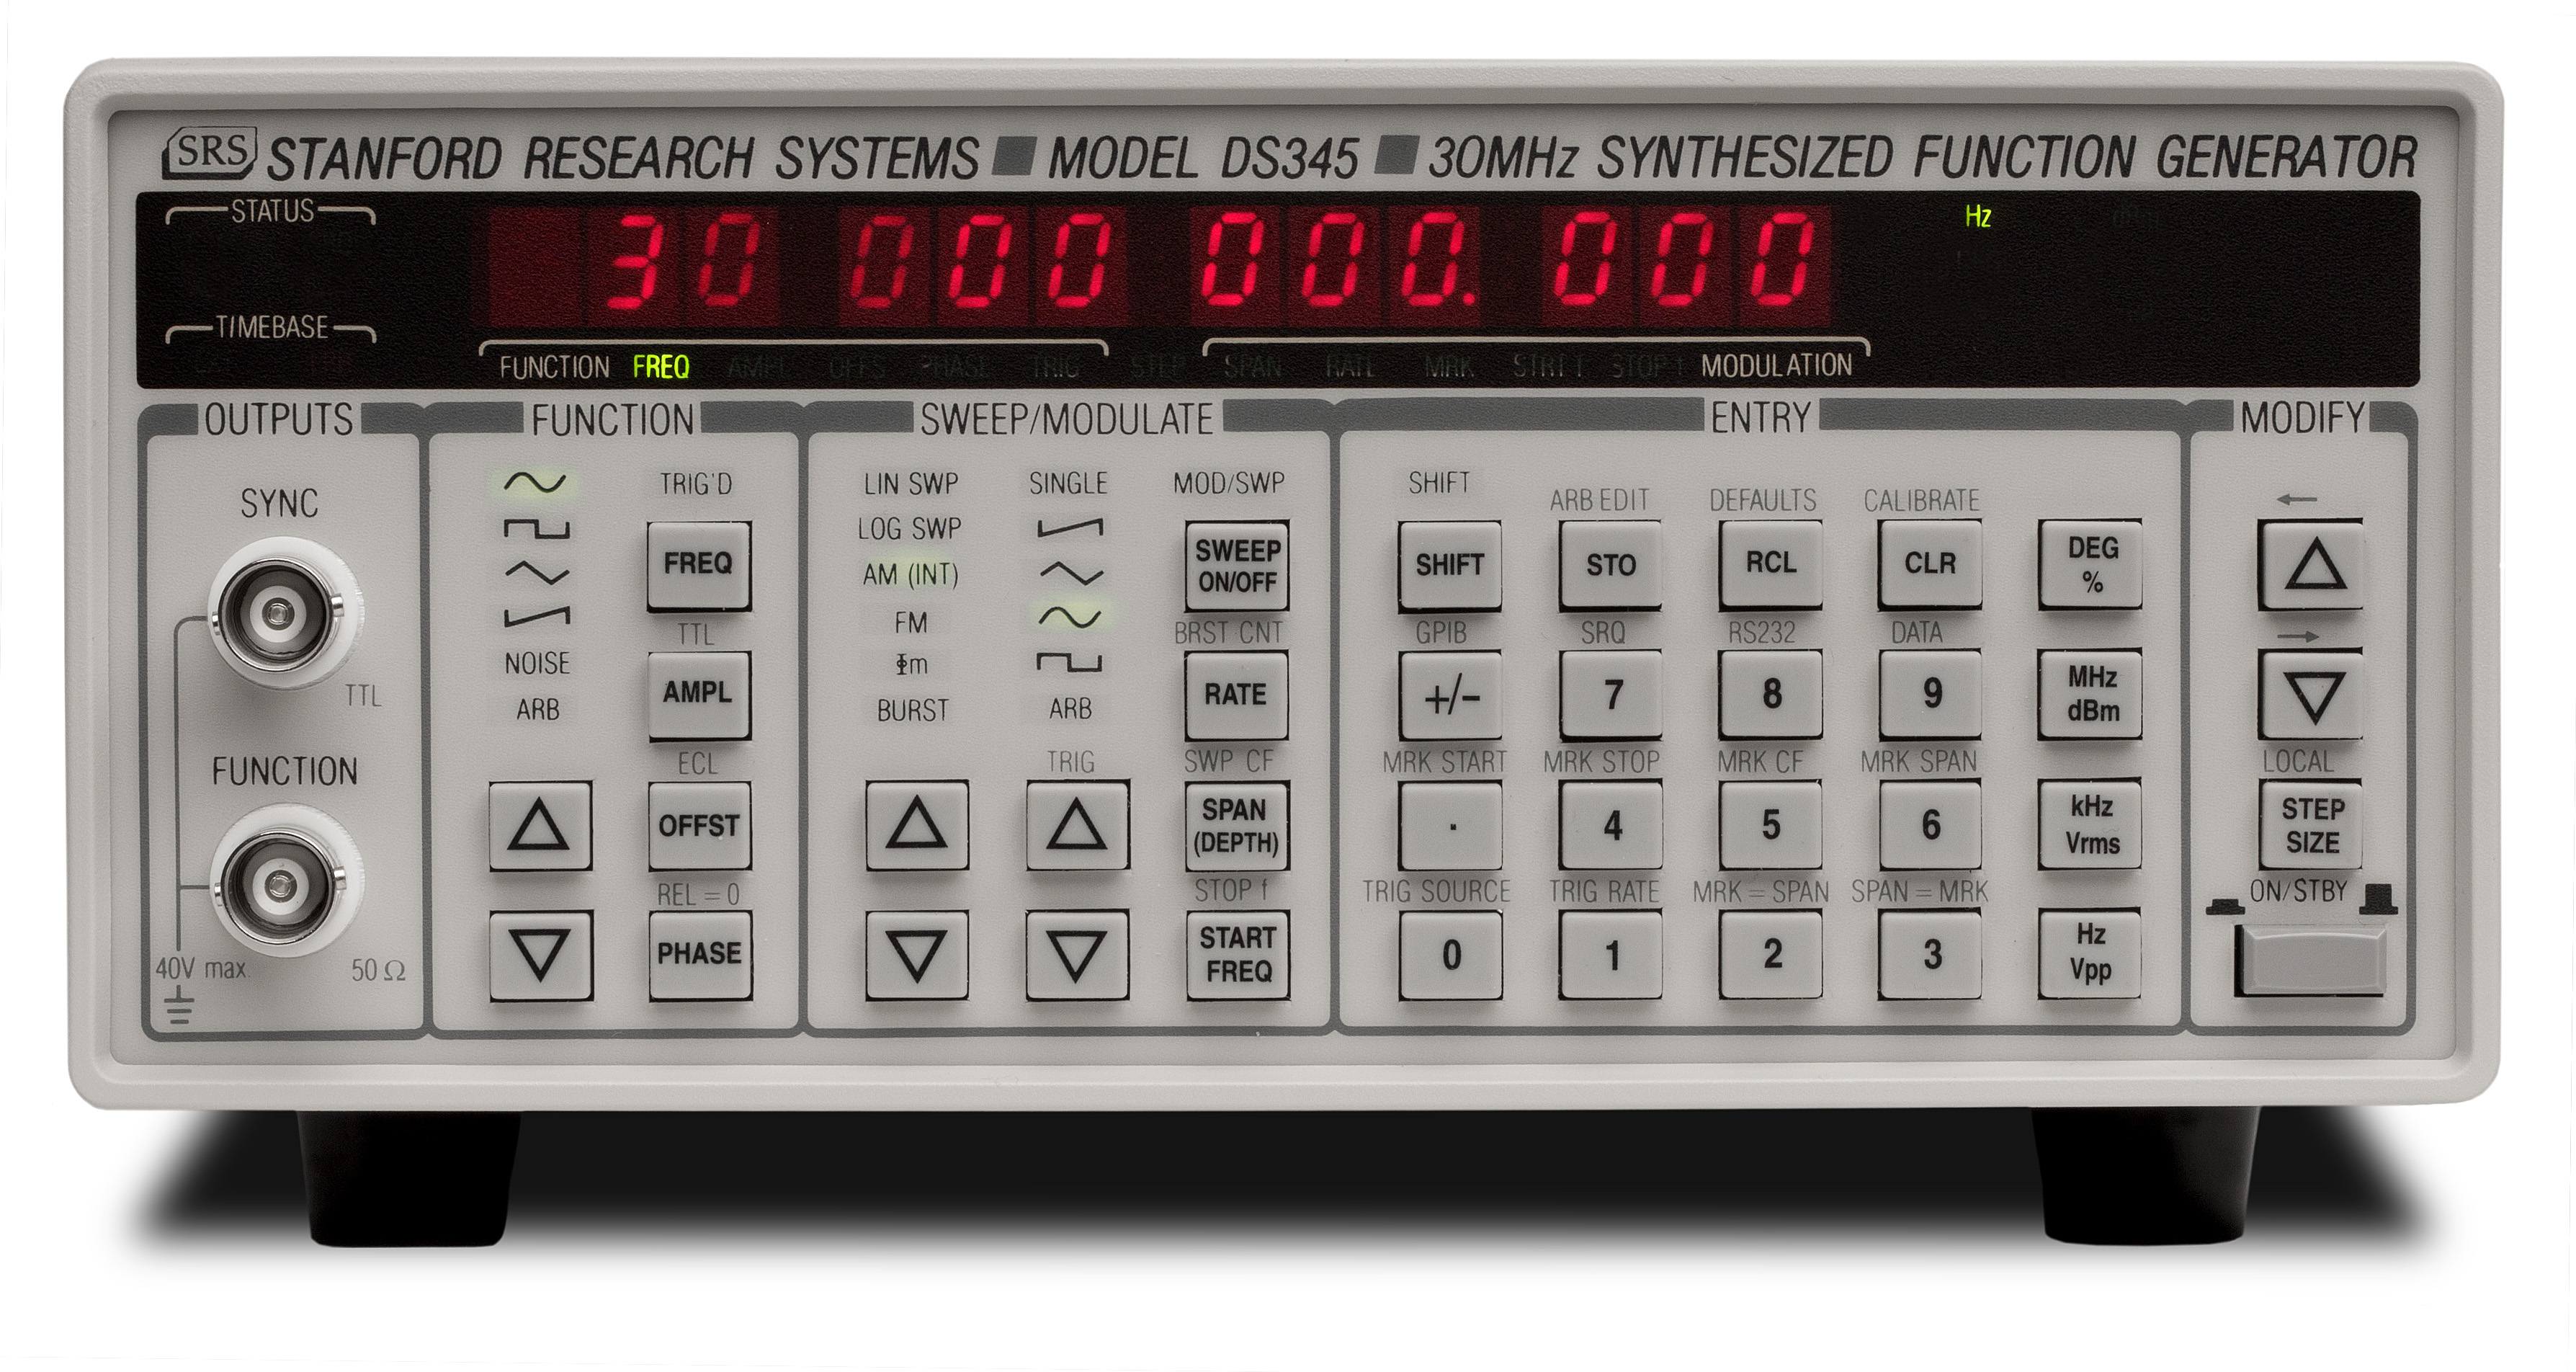 function generator ds345 rh thinksrs com Function Generator Diagram Synthesized Function Generator